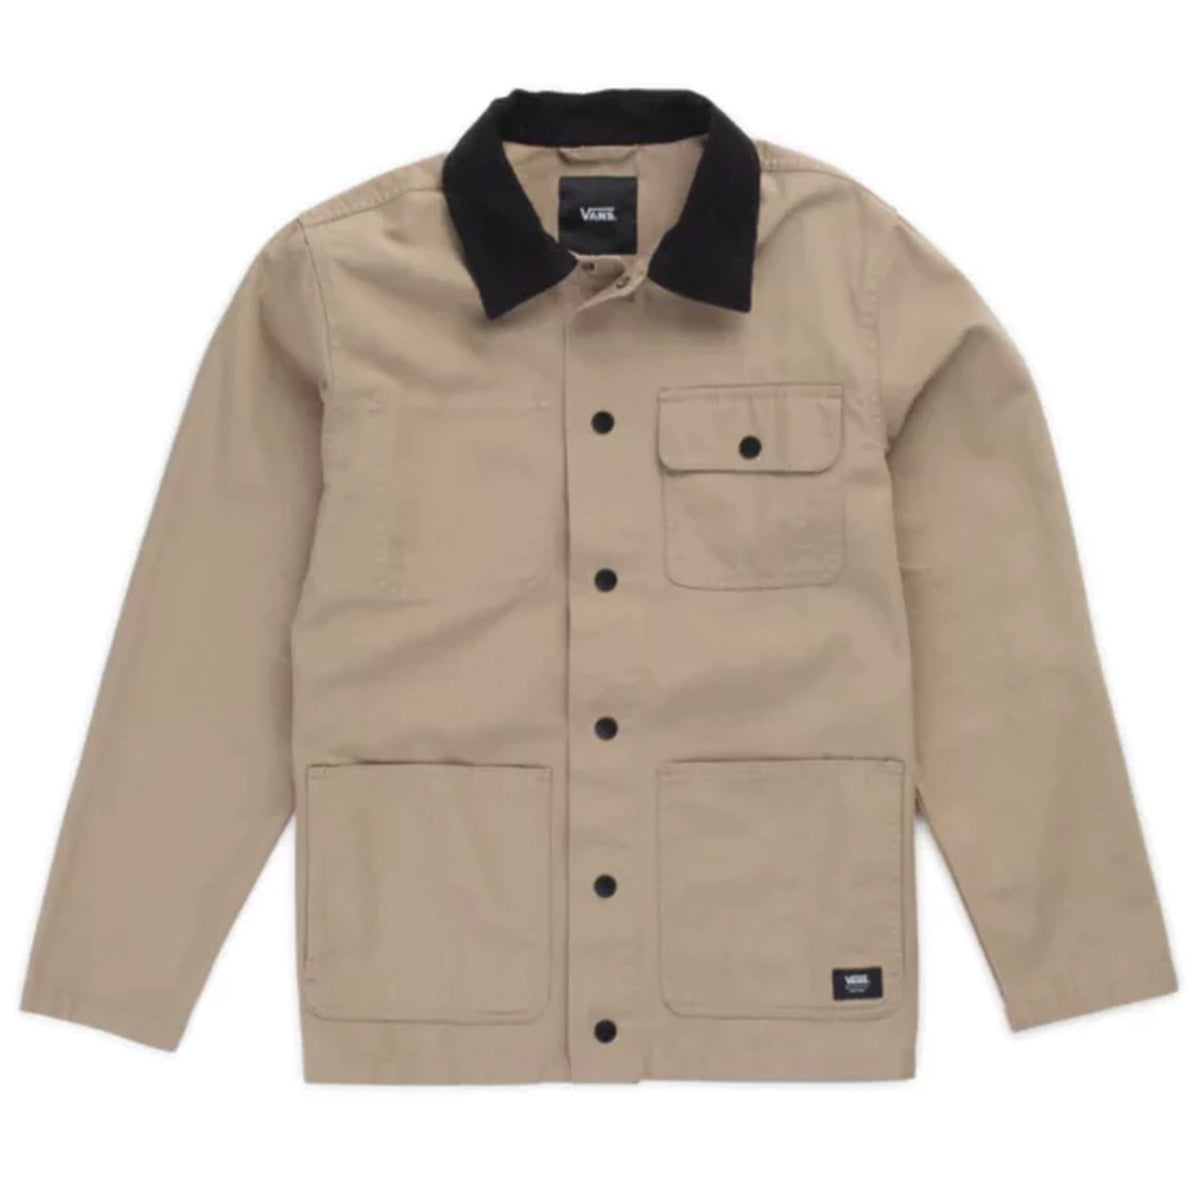 Vans Drill Chore Coat Military Khaki